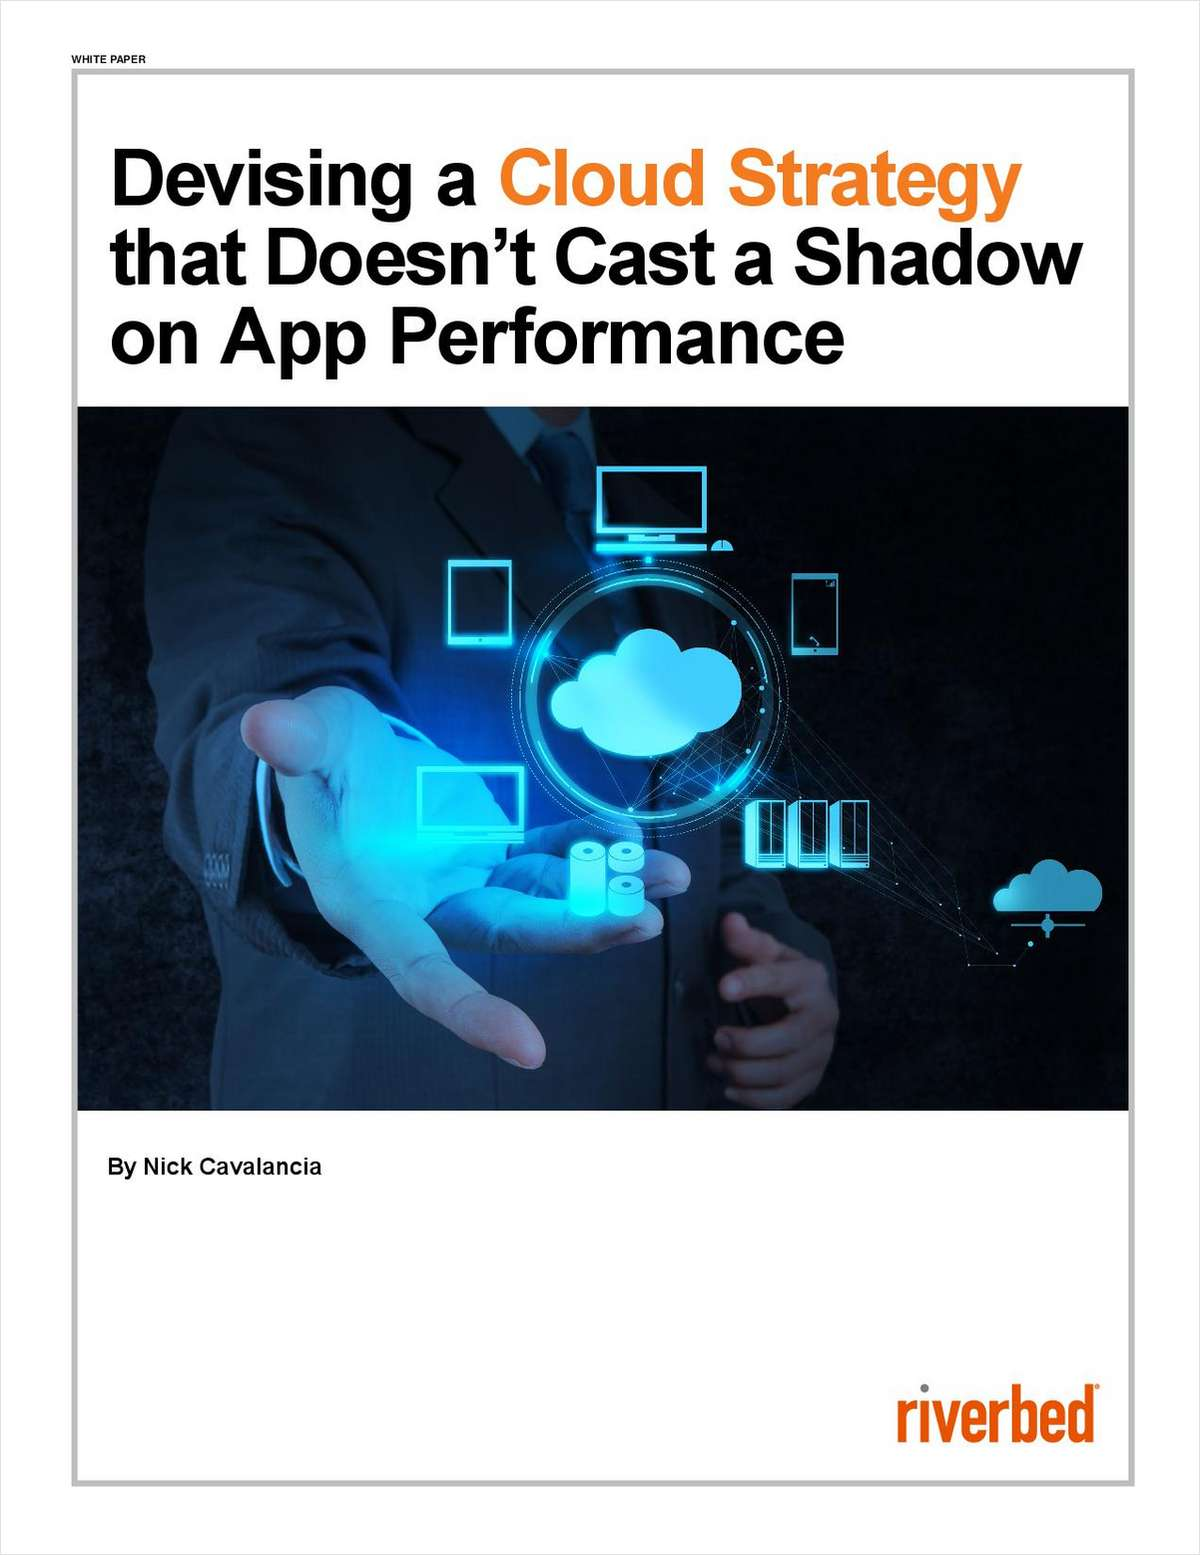 Devising a Cloud Strategy that Doesn't Cast a Shadow on App Performance